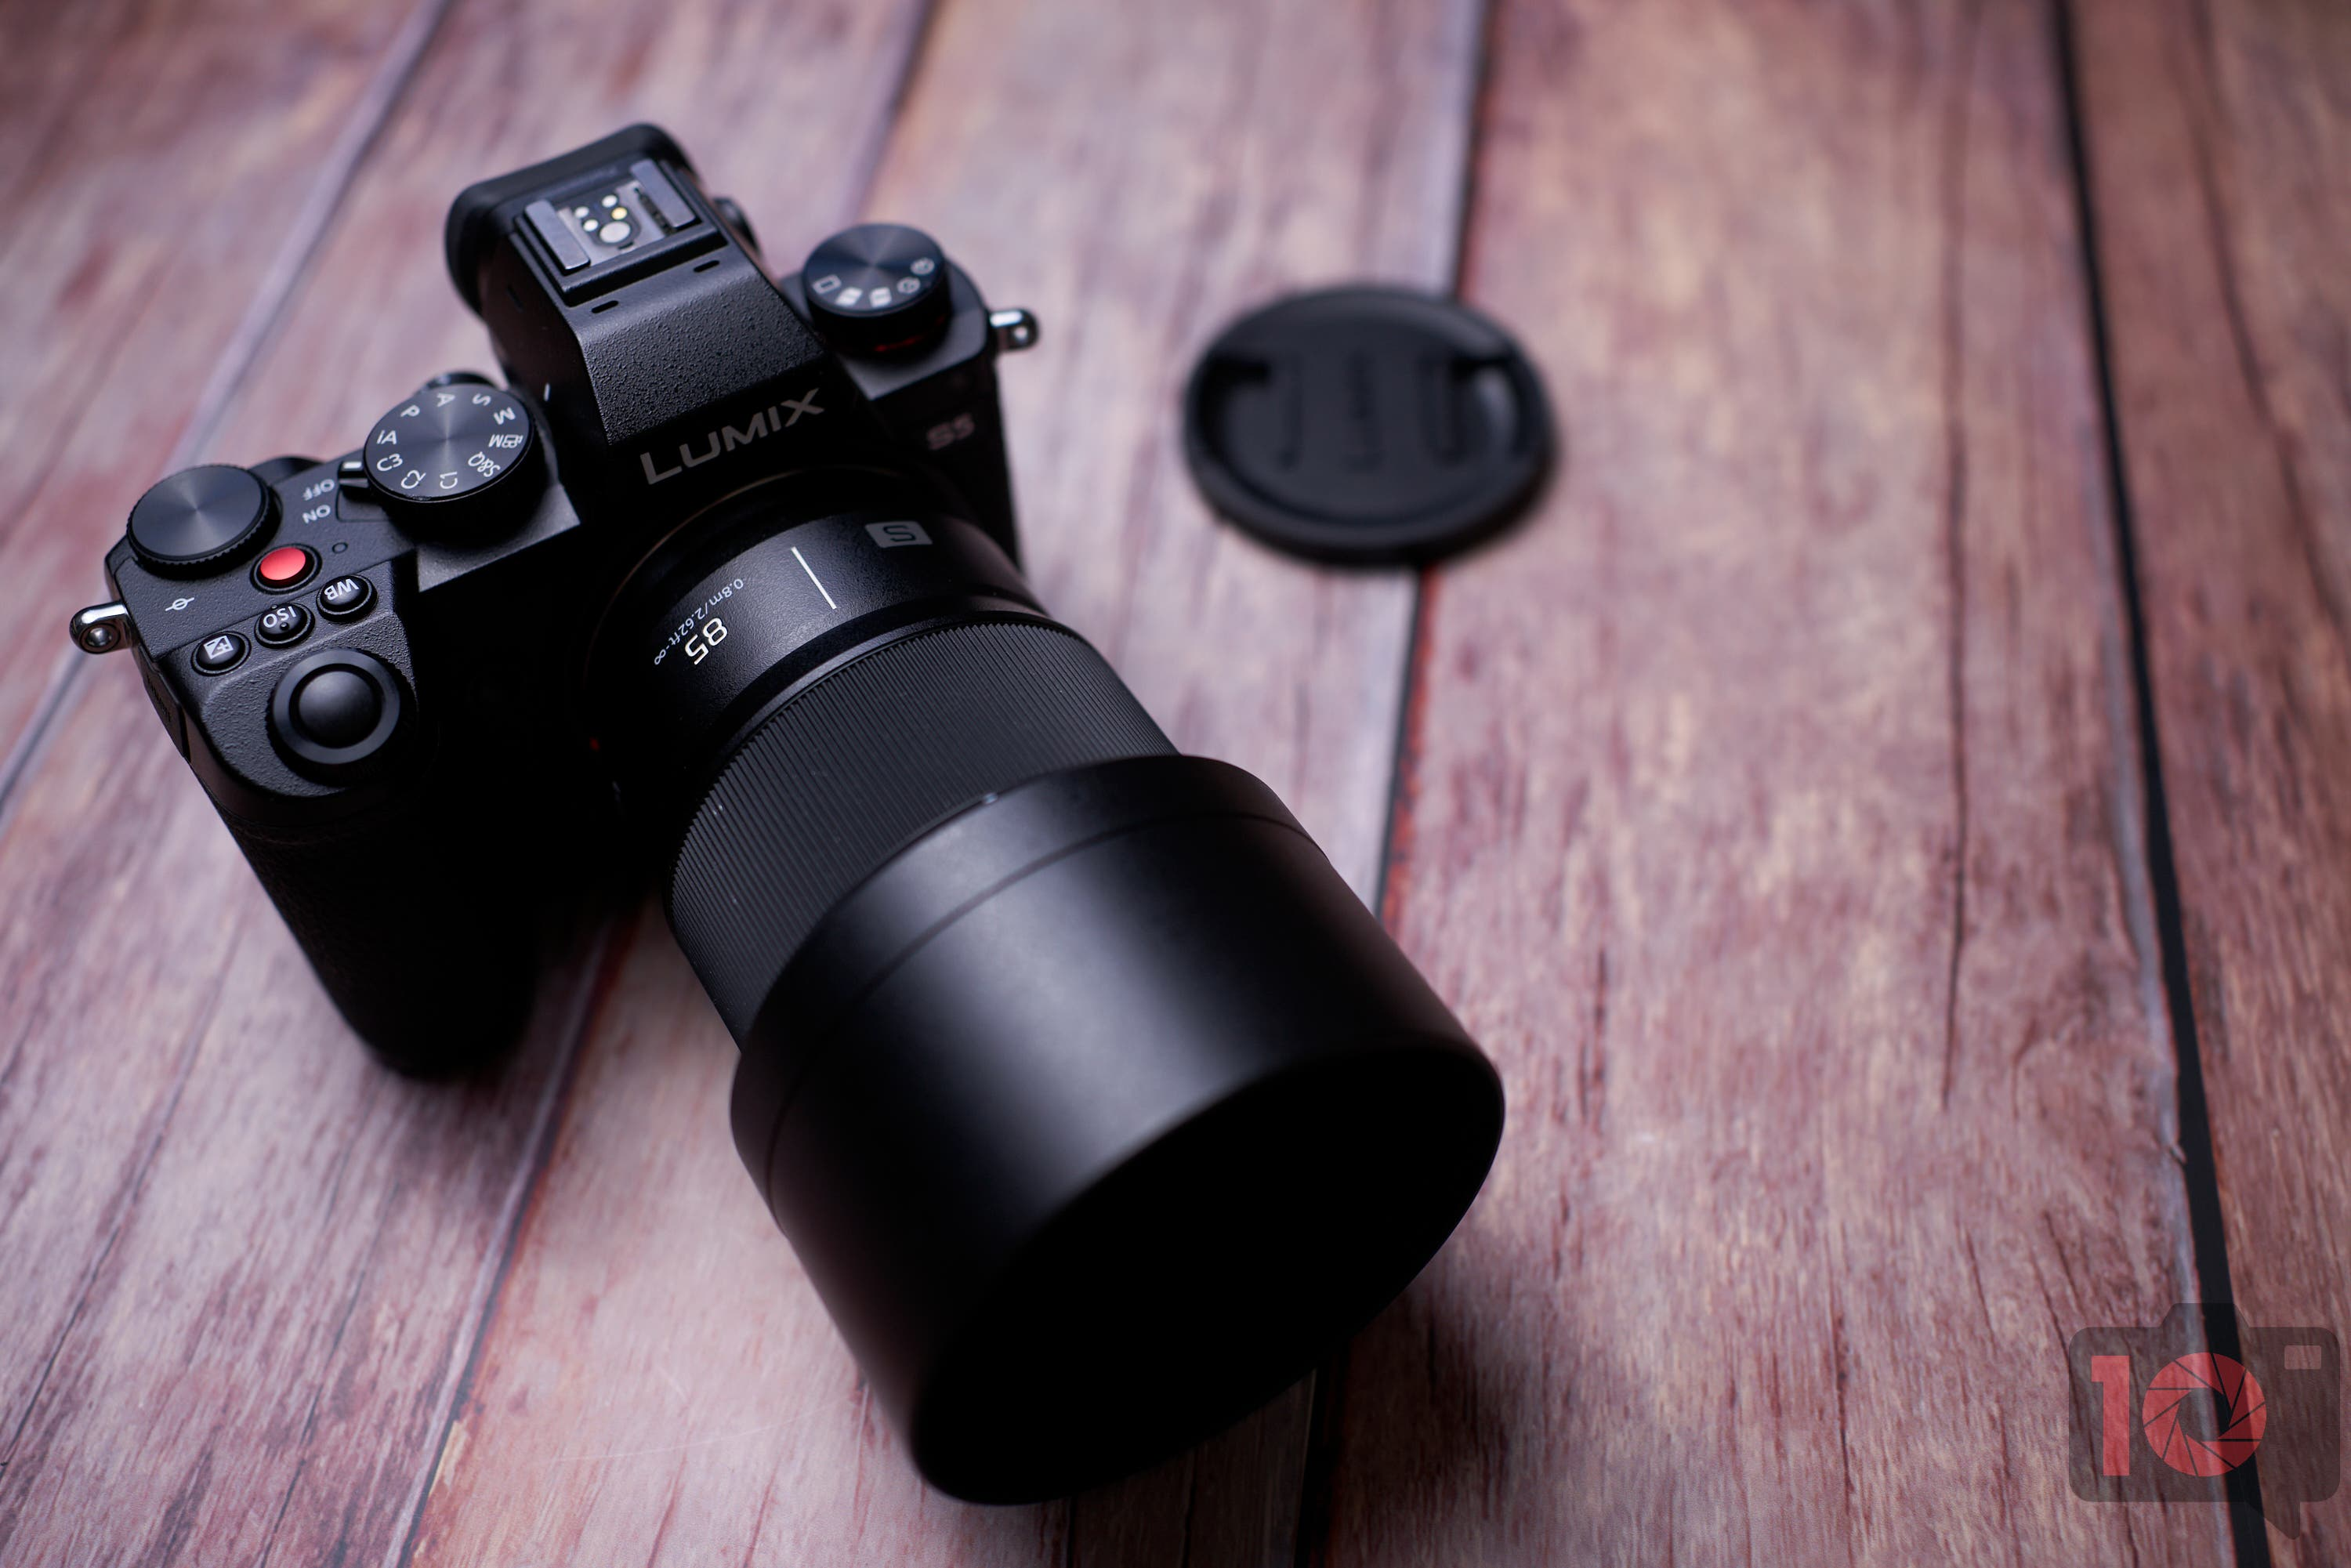 The L Mount Really Needed This. Panasonic 85mm F1.8 Review